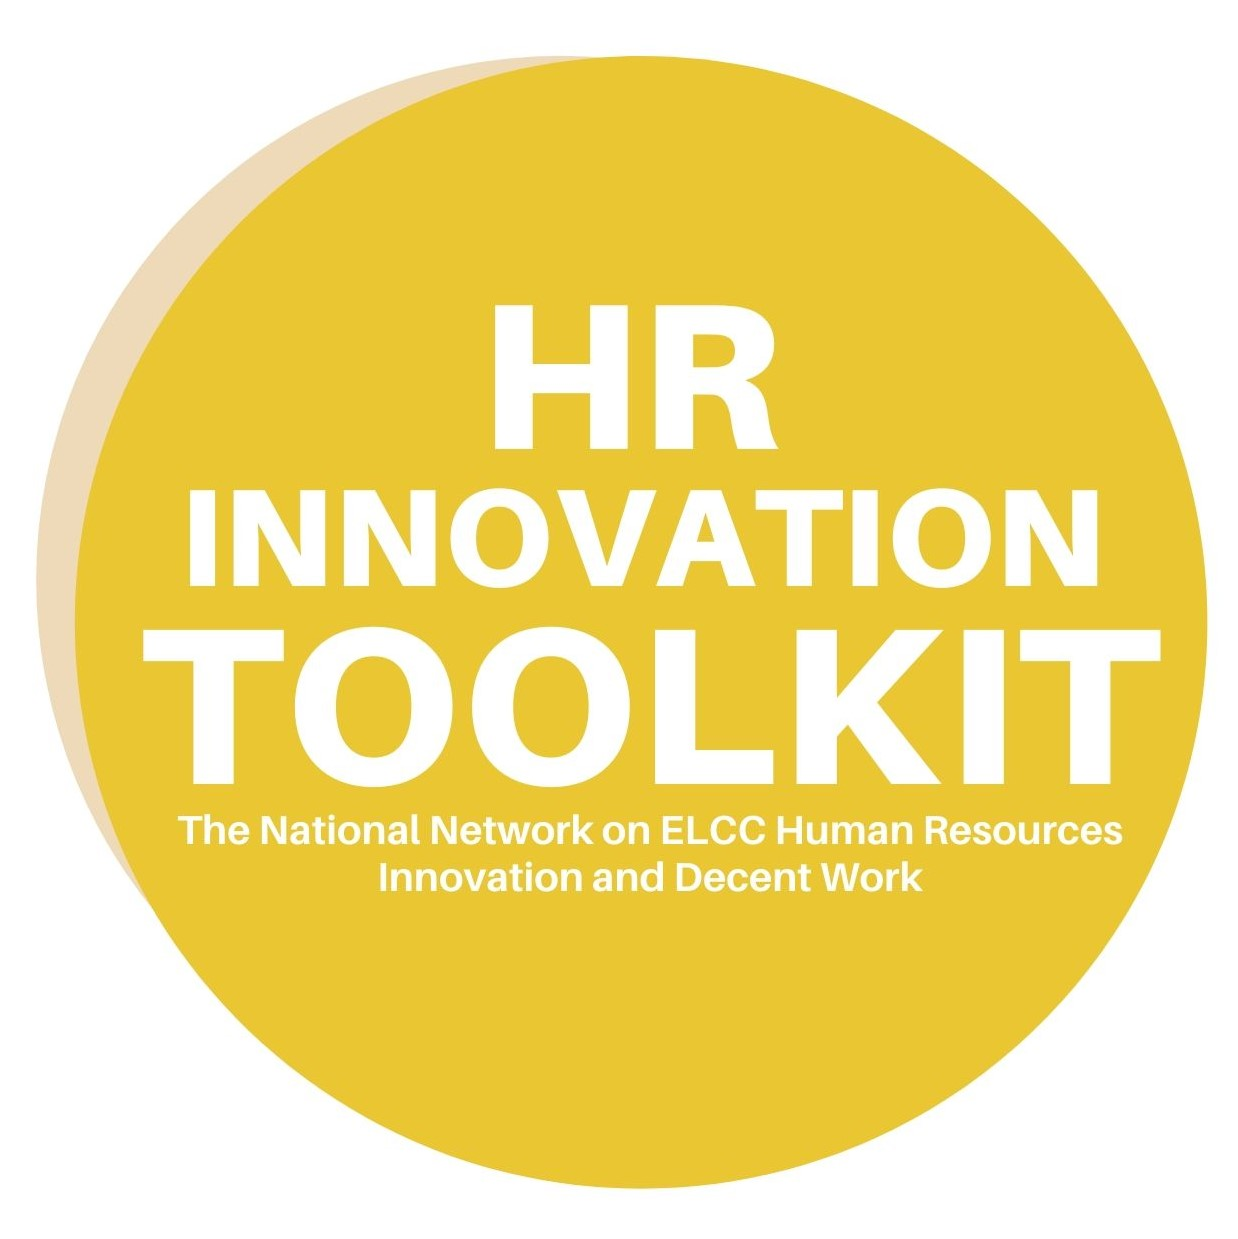 HR_TOOLKIT_ICON.jpg